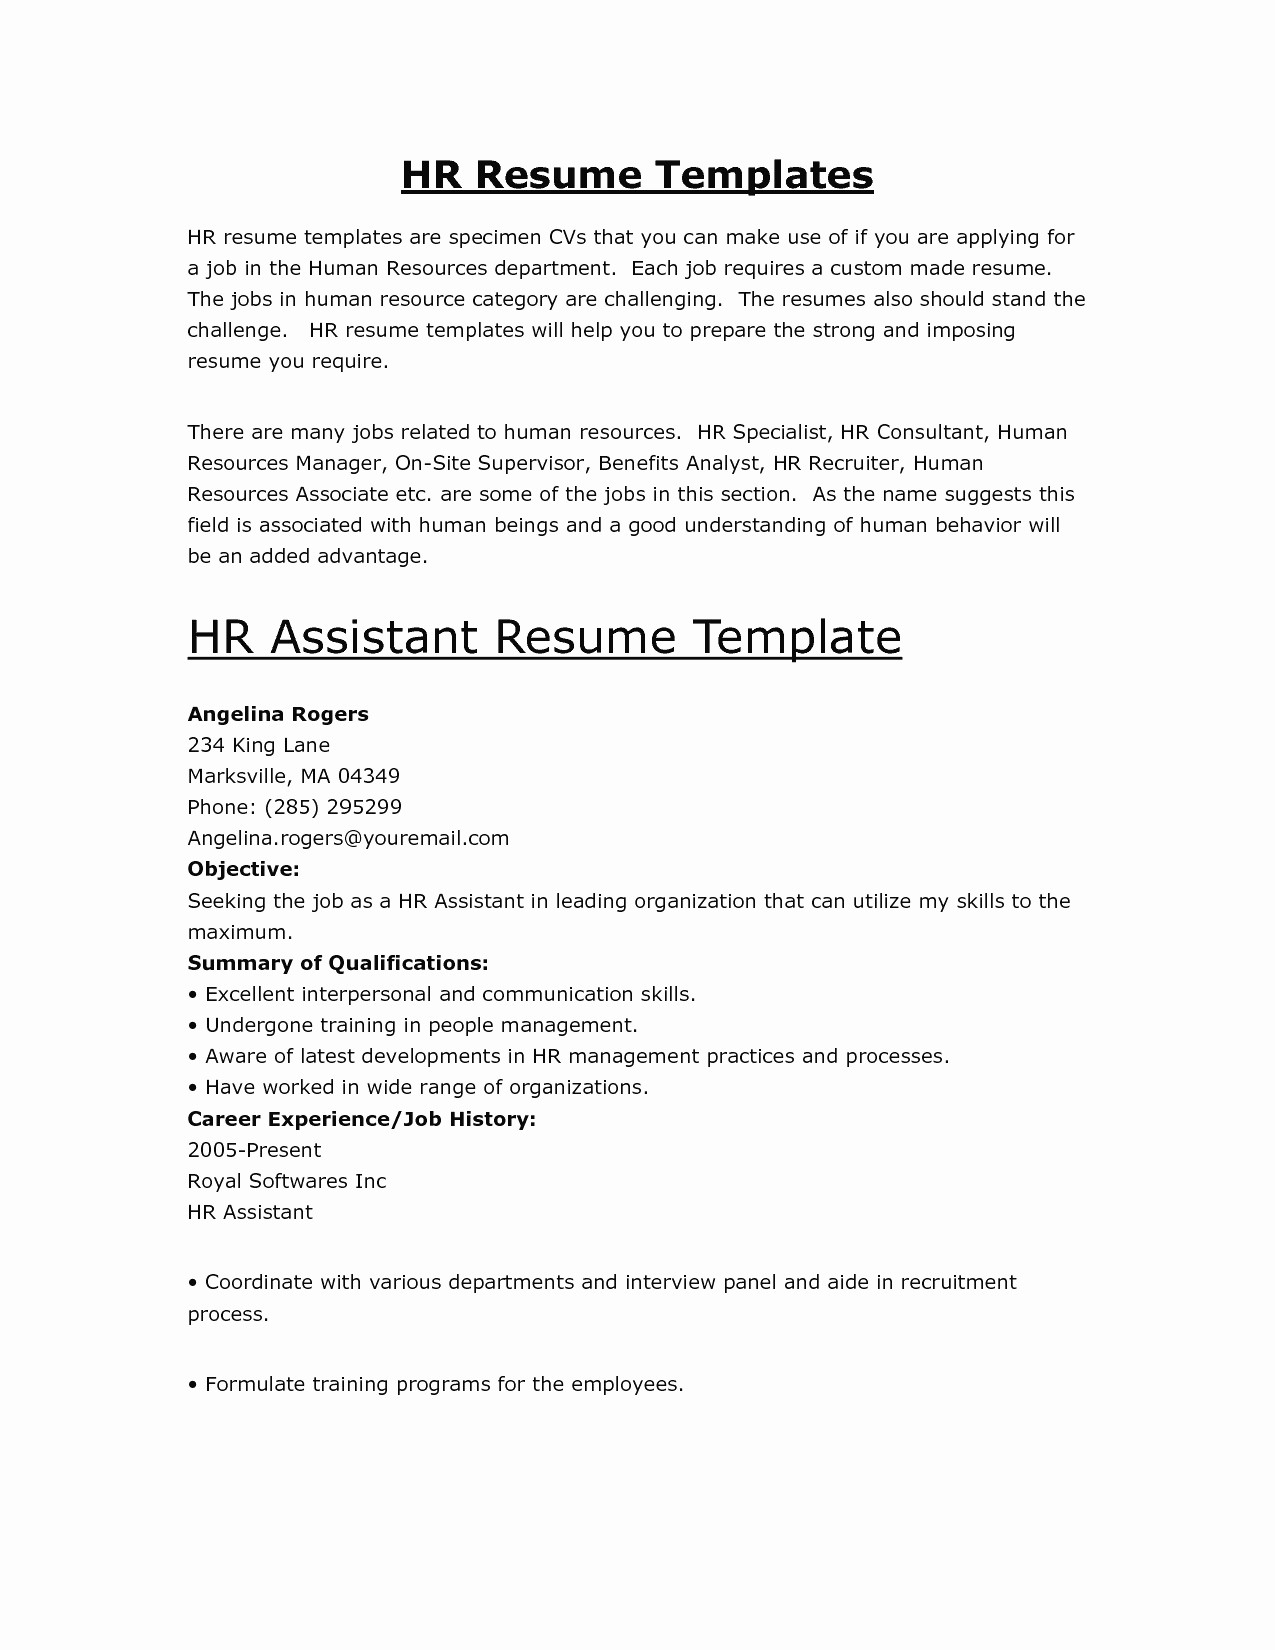 Packer Job Description for Resume - Job Description for Delivery Driver Refrence Packer Job Description